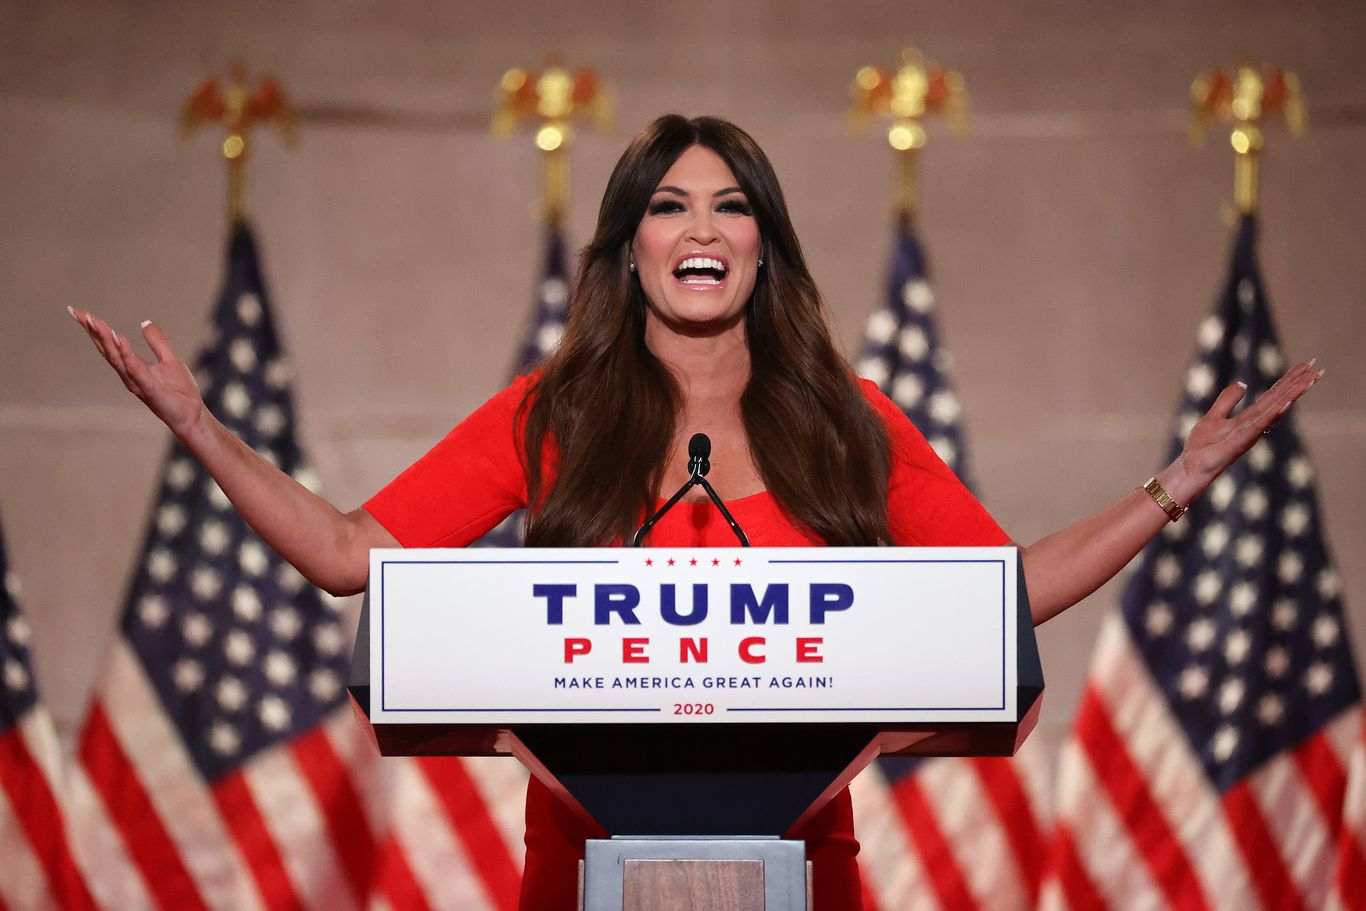 TV viewership for Night 1 of the RNC was 13% lower than the DNC thumbnail